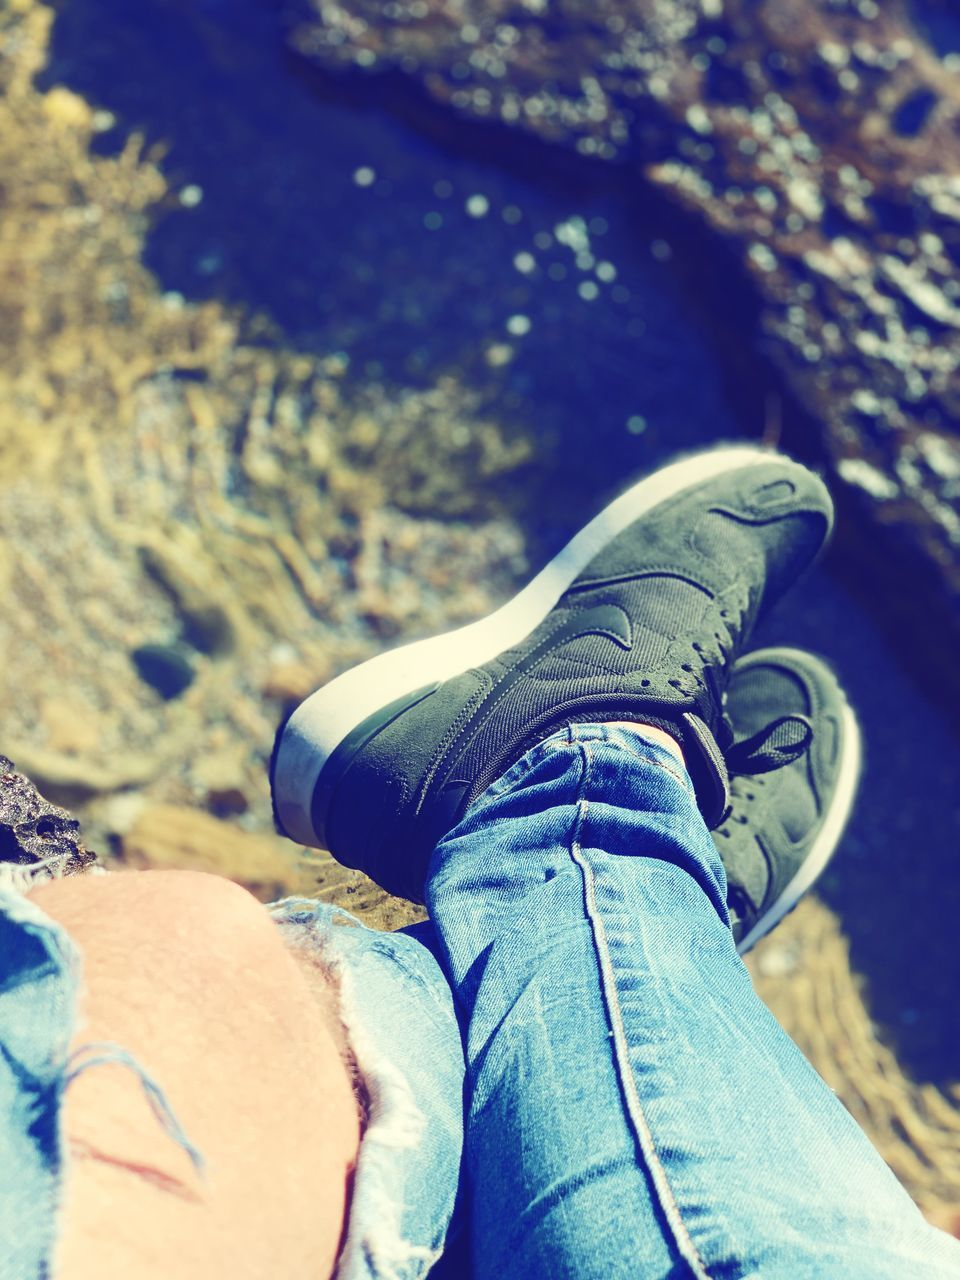 low section, body part, shoe, human body part, one person, human leg, personal perspective, real people, jeans, lifestyles, day, leisure activity, casual clothing, close-up, men, high angle view, focus on foreground, rock - object, rock, human limb, human foot, outdoors